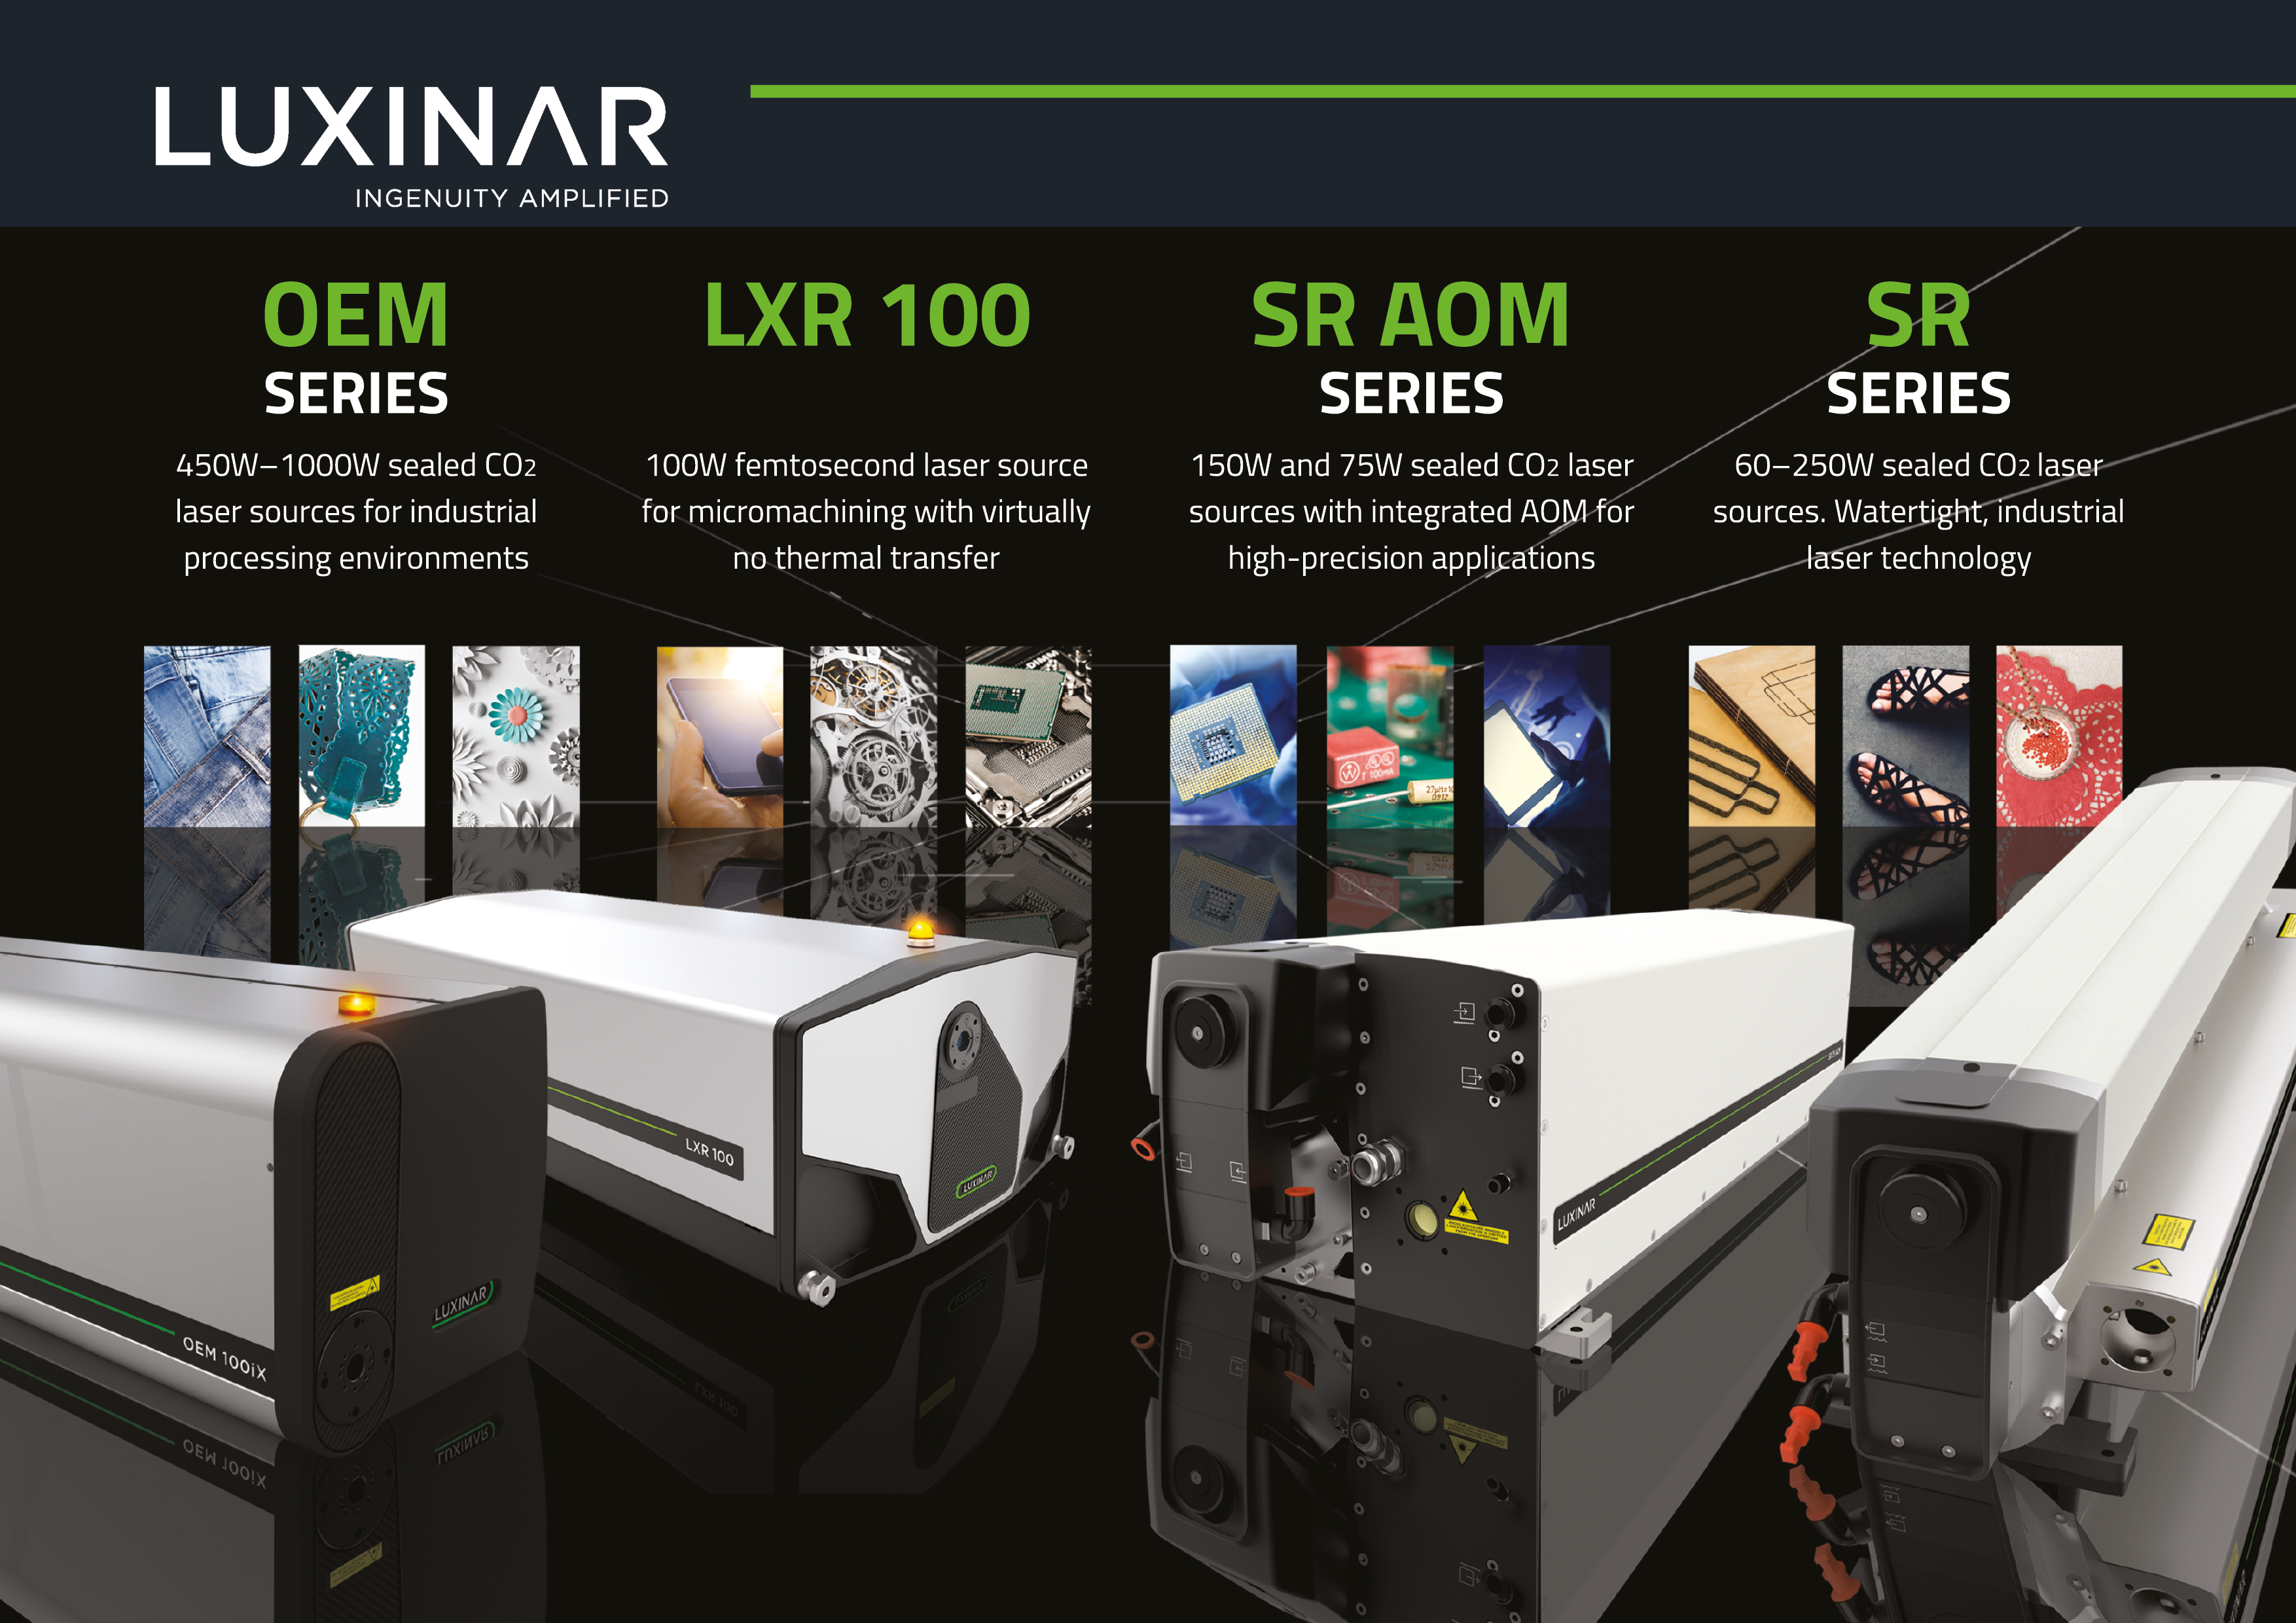 CO2 laser source product range from Luxinar